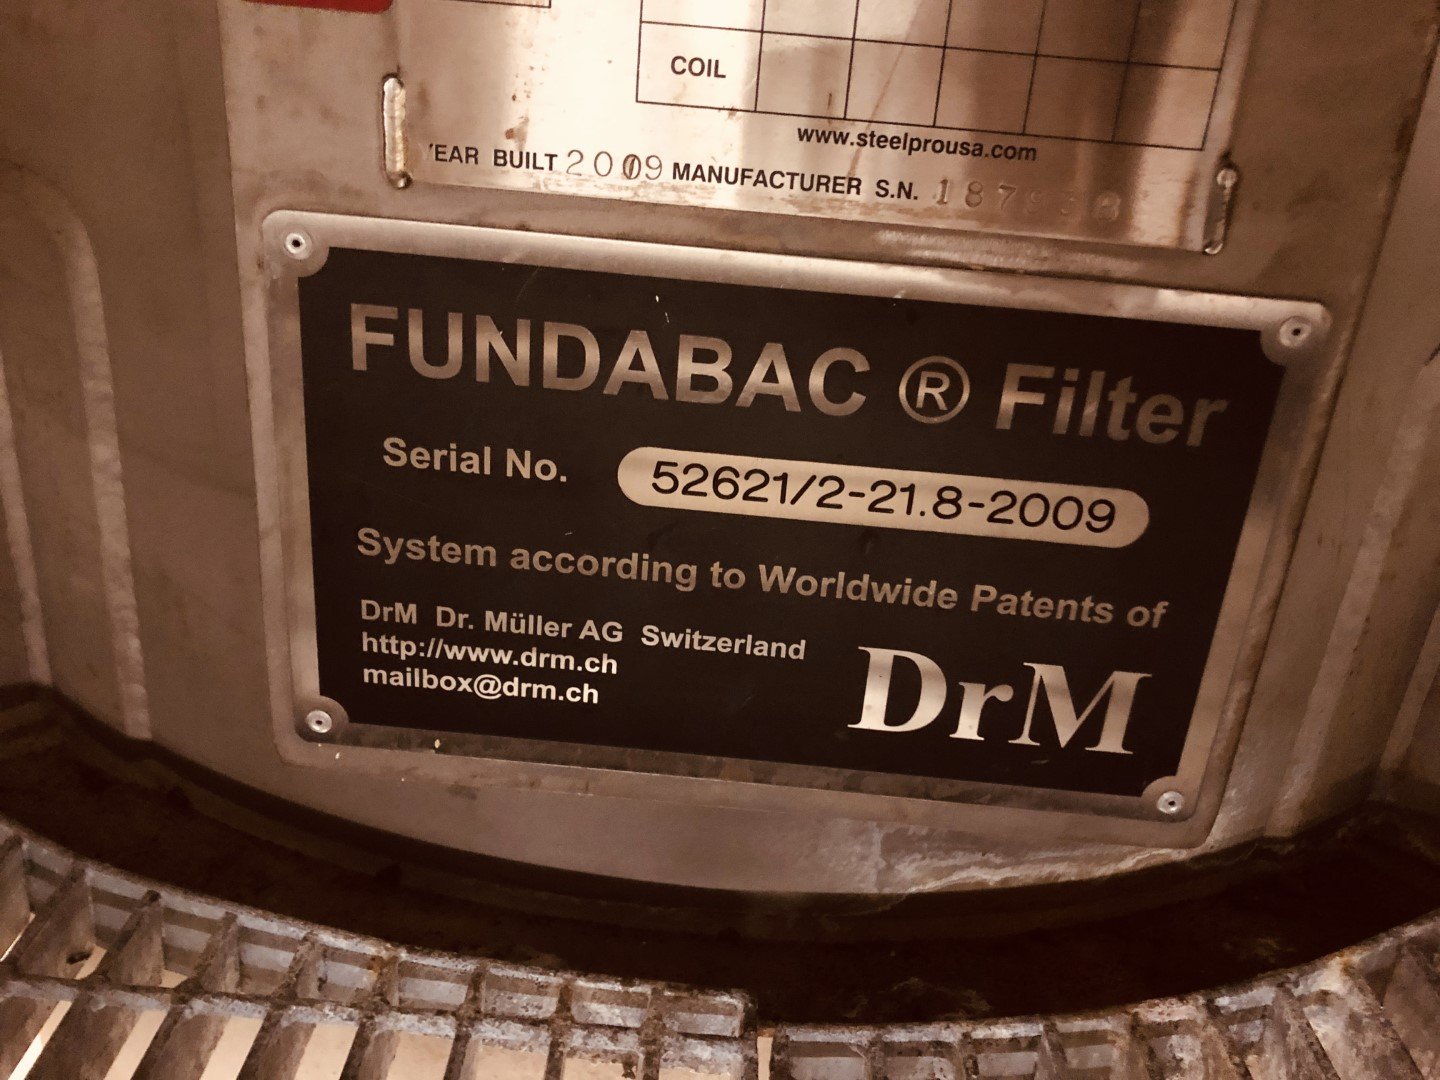 21.8 Sq Meter Fundabac Candle Filter, Duplex 2205